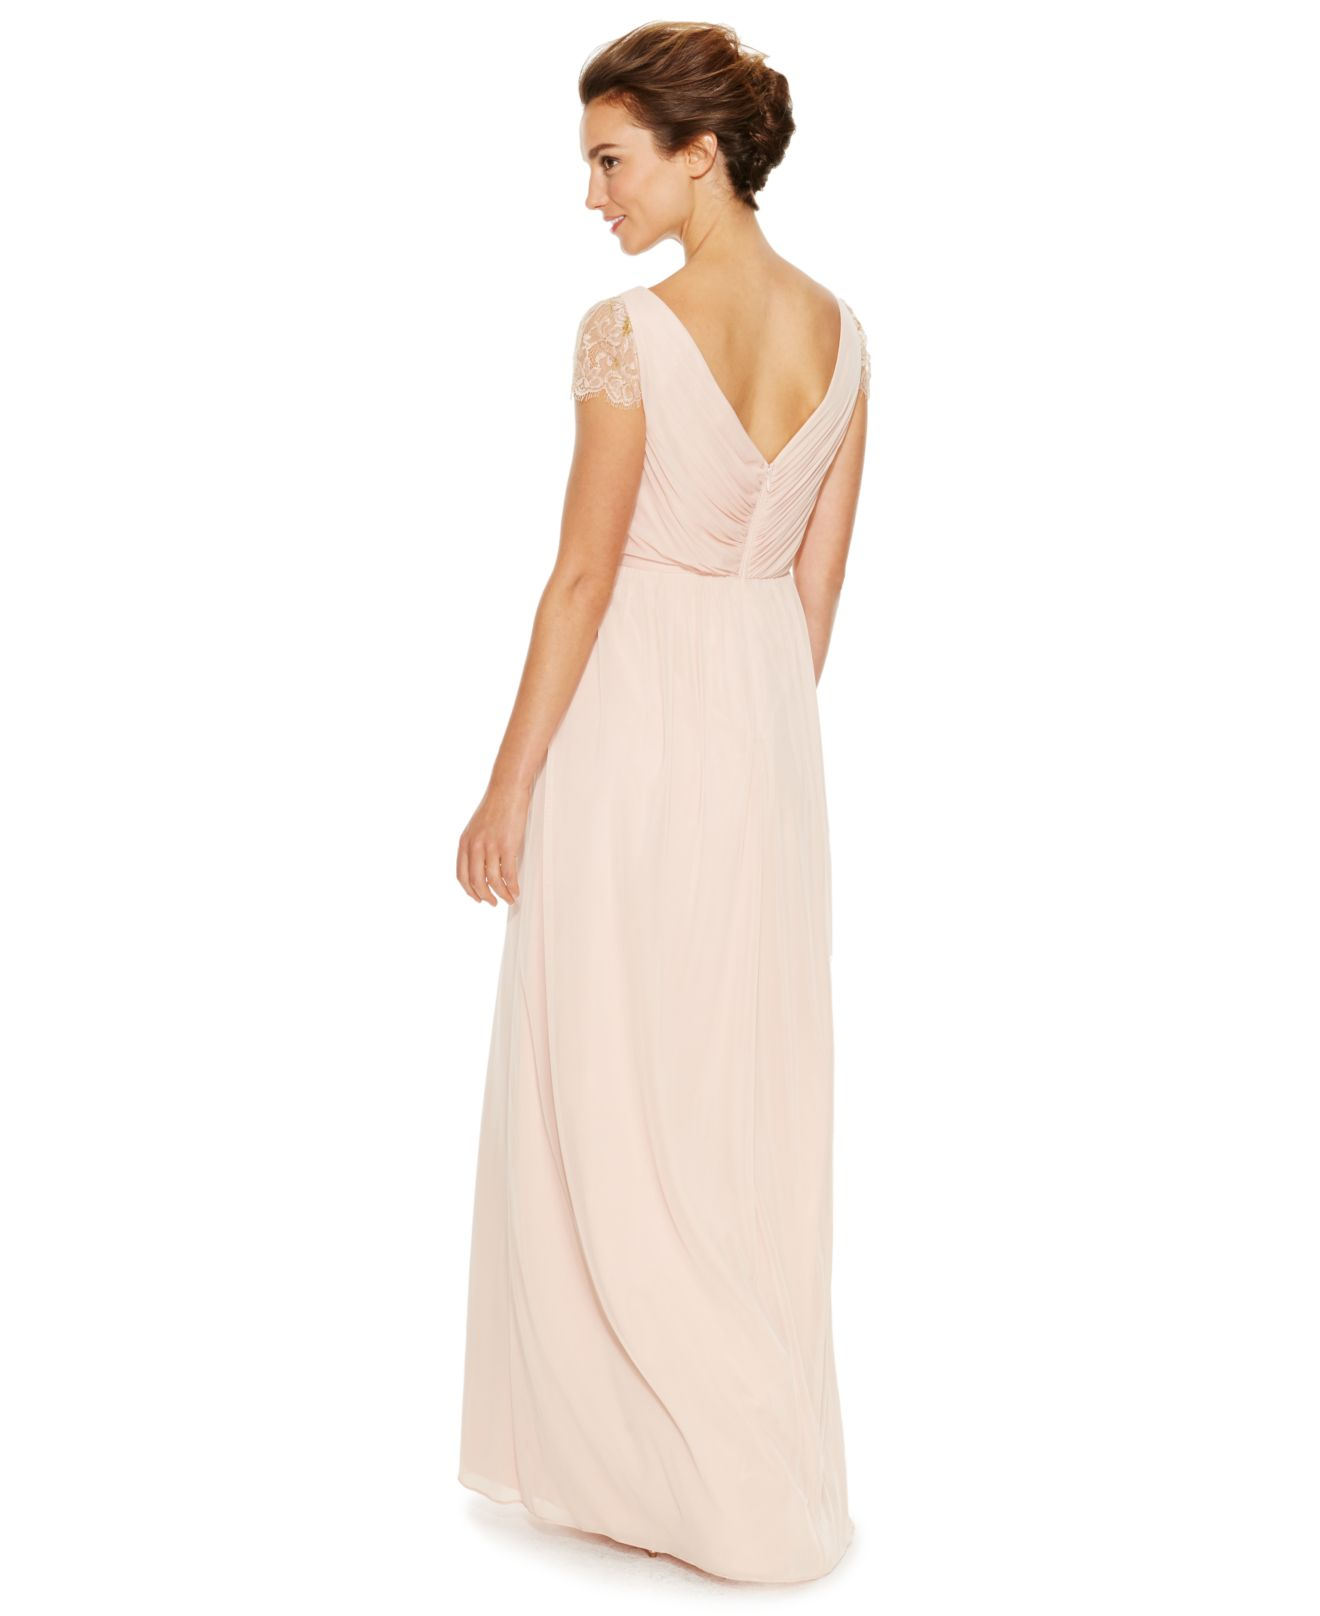 Lyst - Adrianna Papell Lace Twist-front Gown in Pink